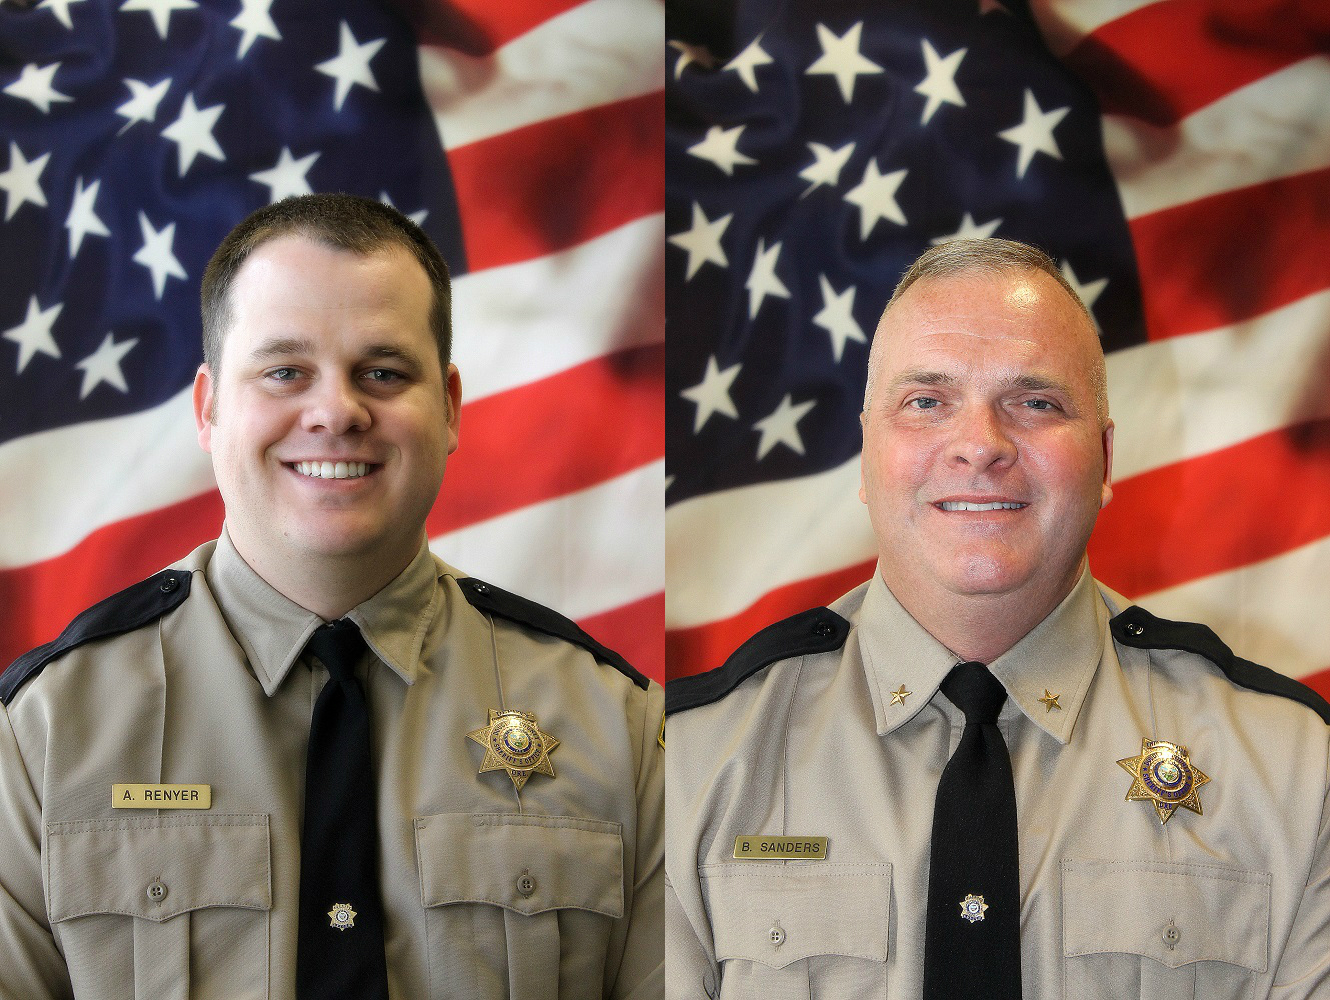 Senior Deputy Andrew Renyer &amp;amp;{&amp;nbsp;}Undersheriff Brian Sanders received honors at the 2017 State Sheriff's Banquet in Bend.{&amp;nbsp;}(Photos courtesy Douglas County Sheriff's Office)<p></p>